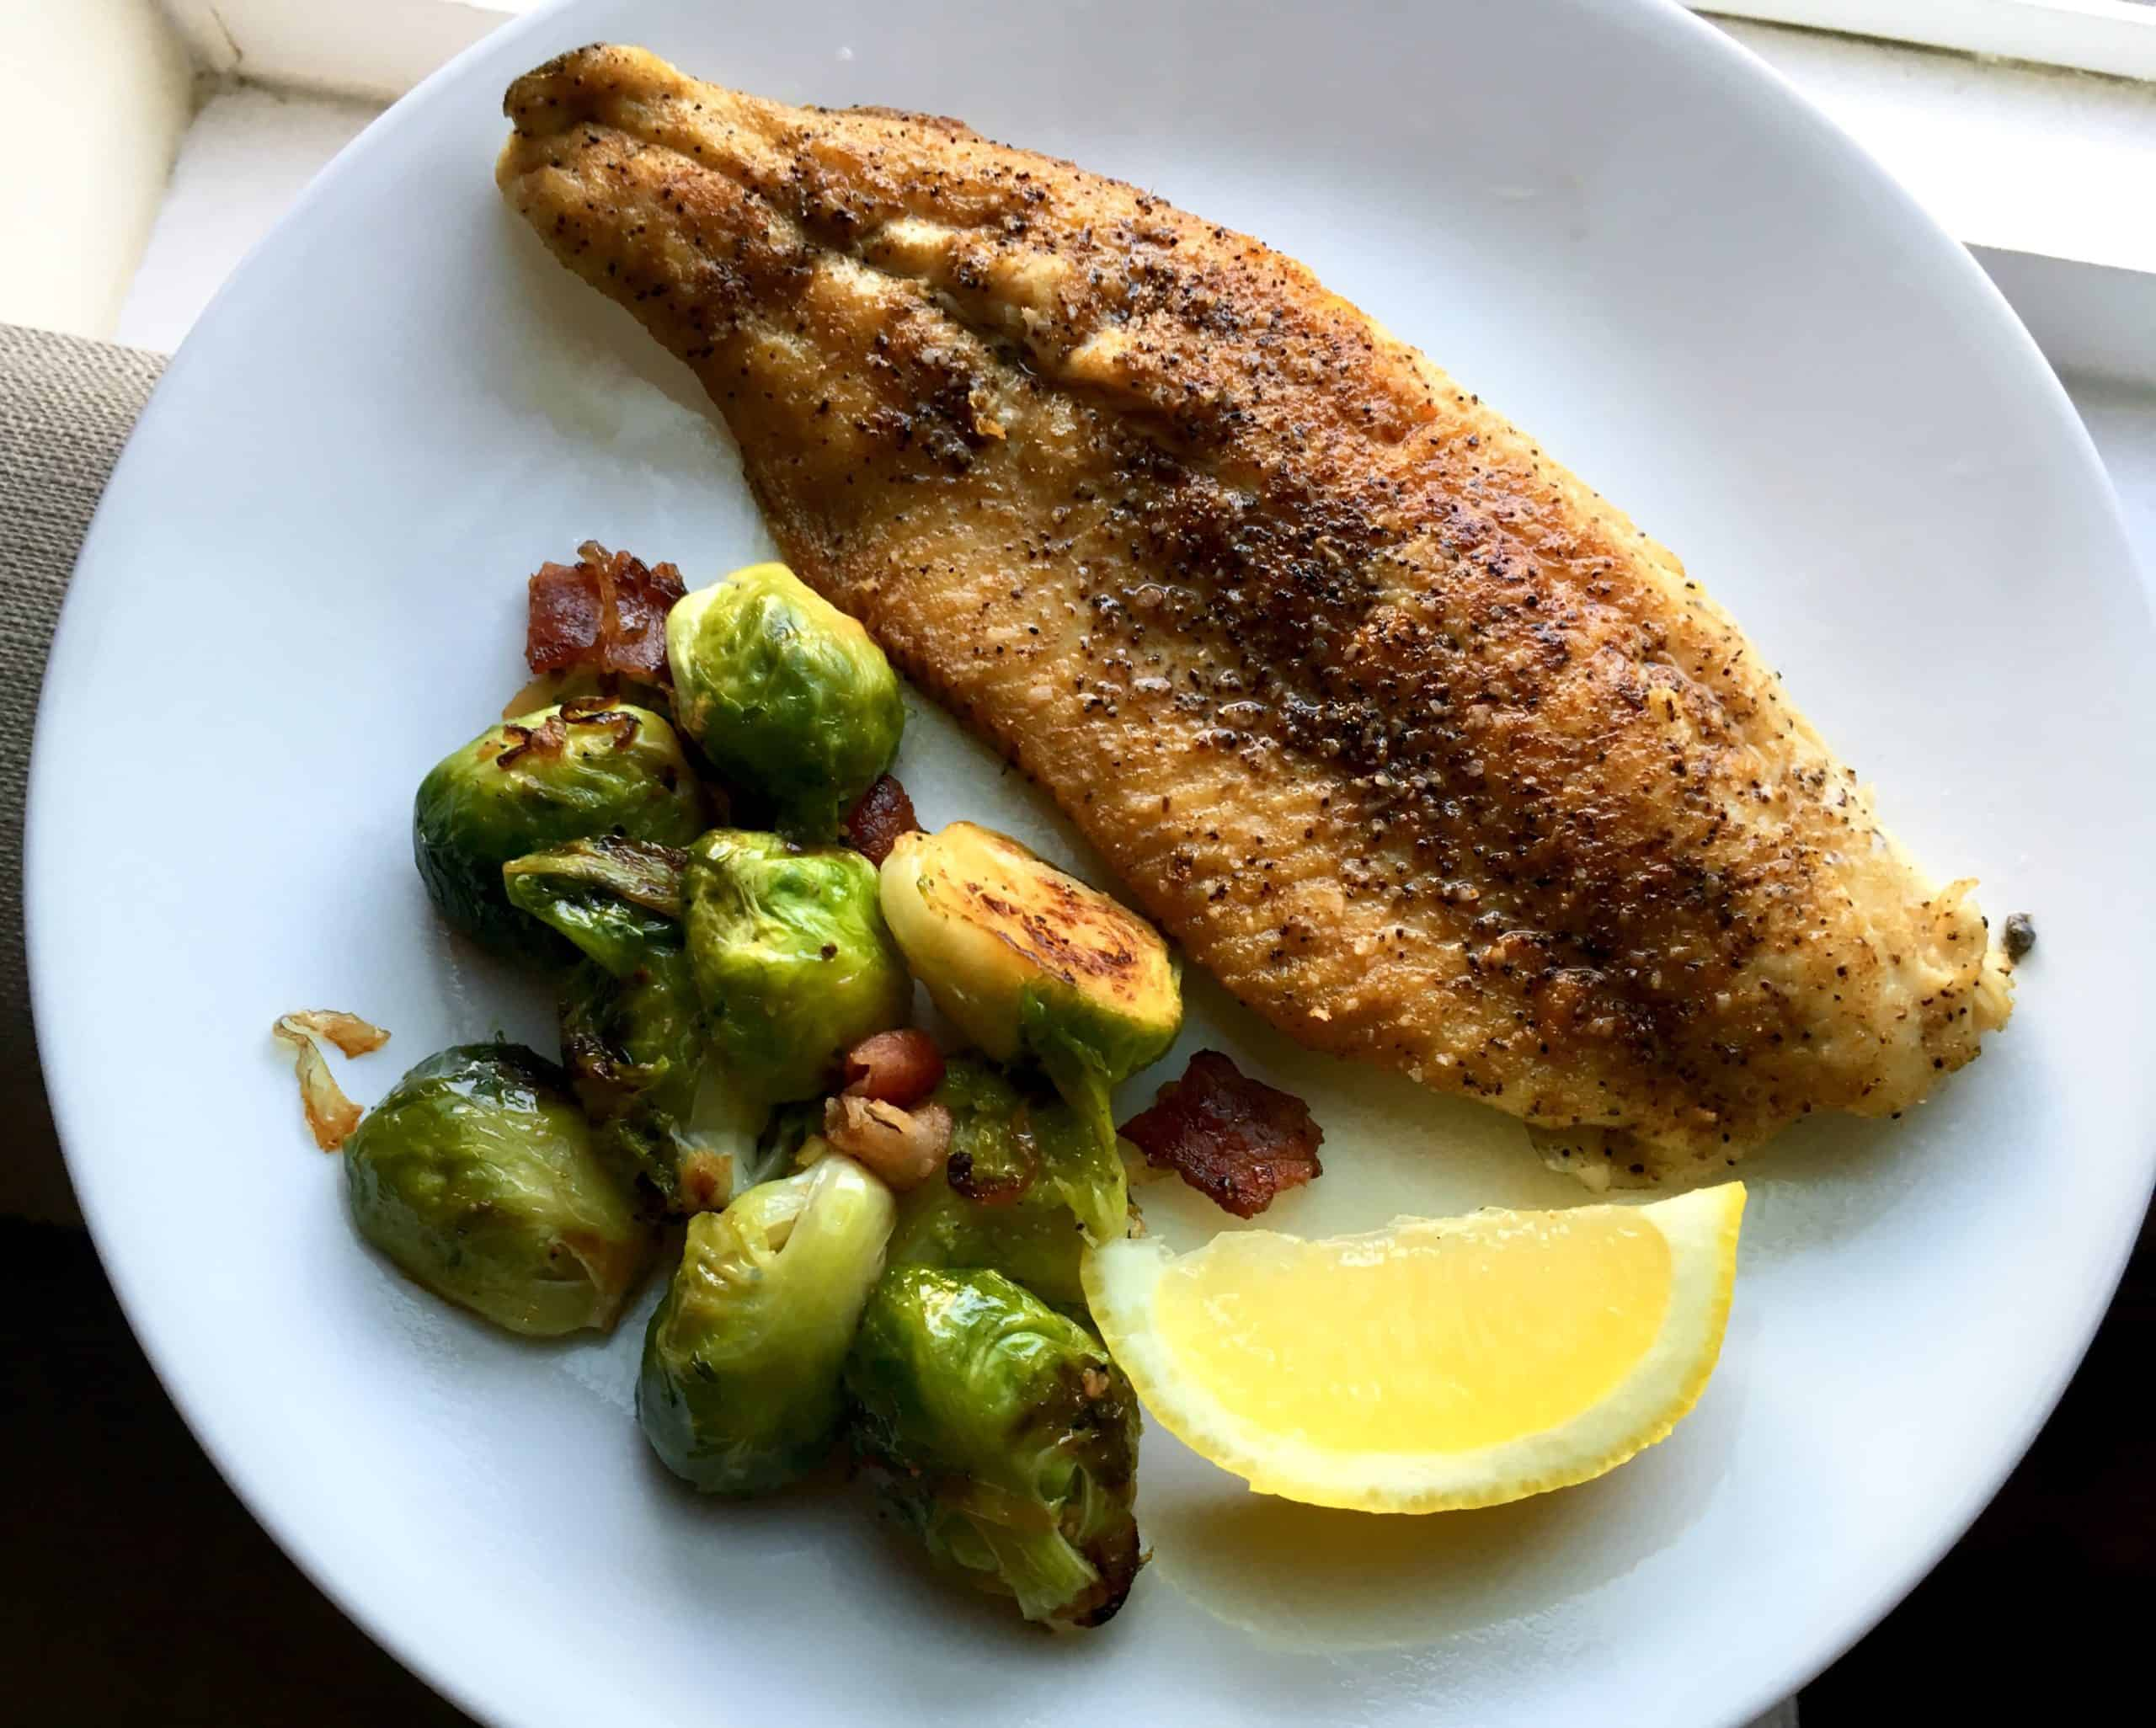 Rainbow trout and brussels sprouts